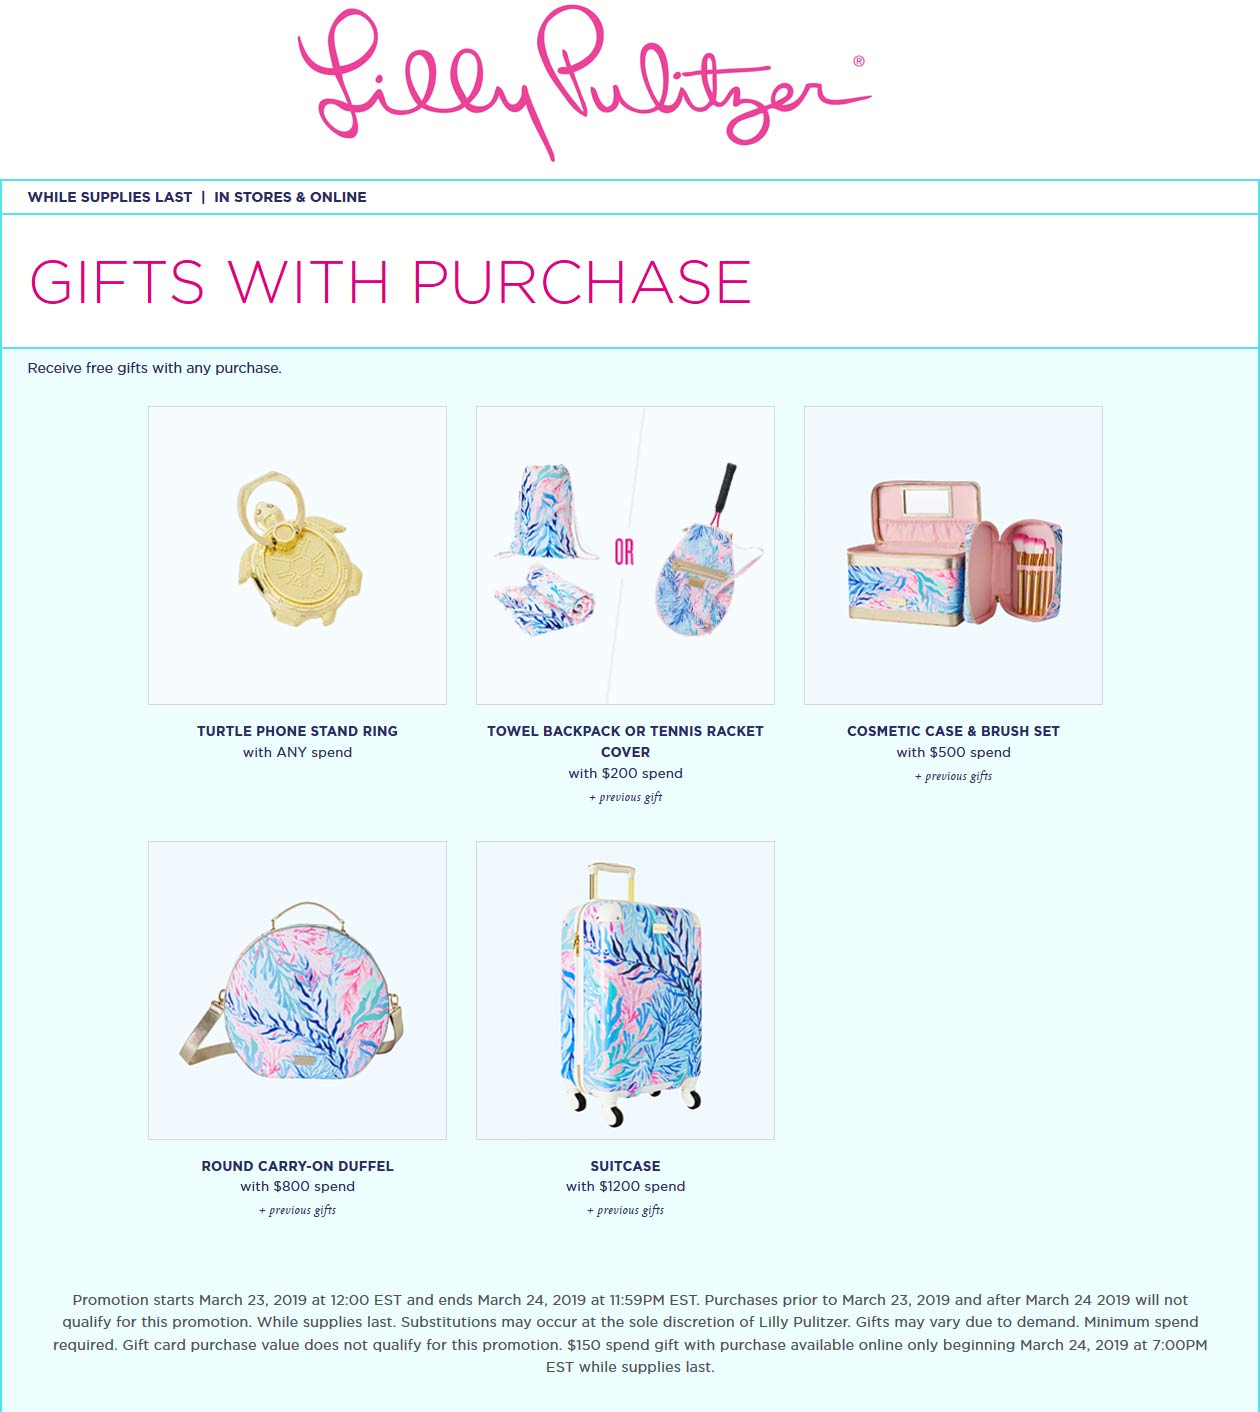 Lilly Pulitzer Coupon February 2020 Free shwag with any order today at Lilly Pulitzer, ditto online